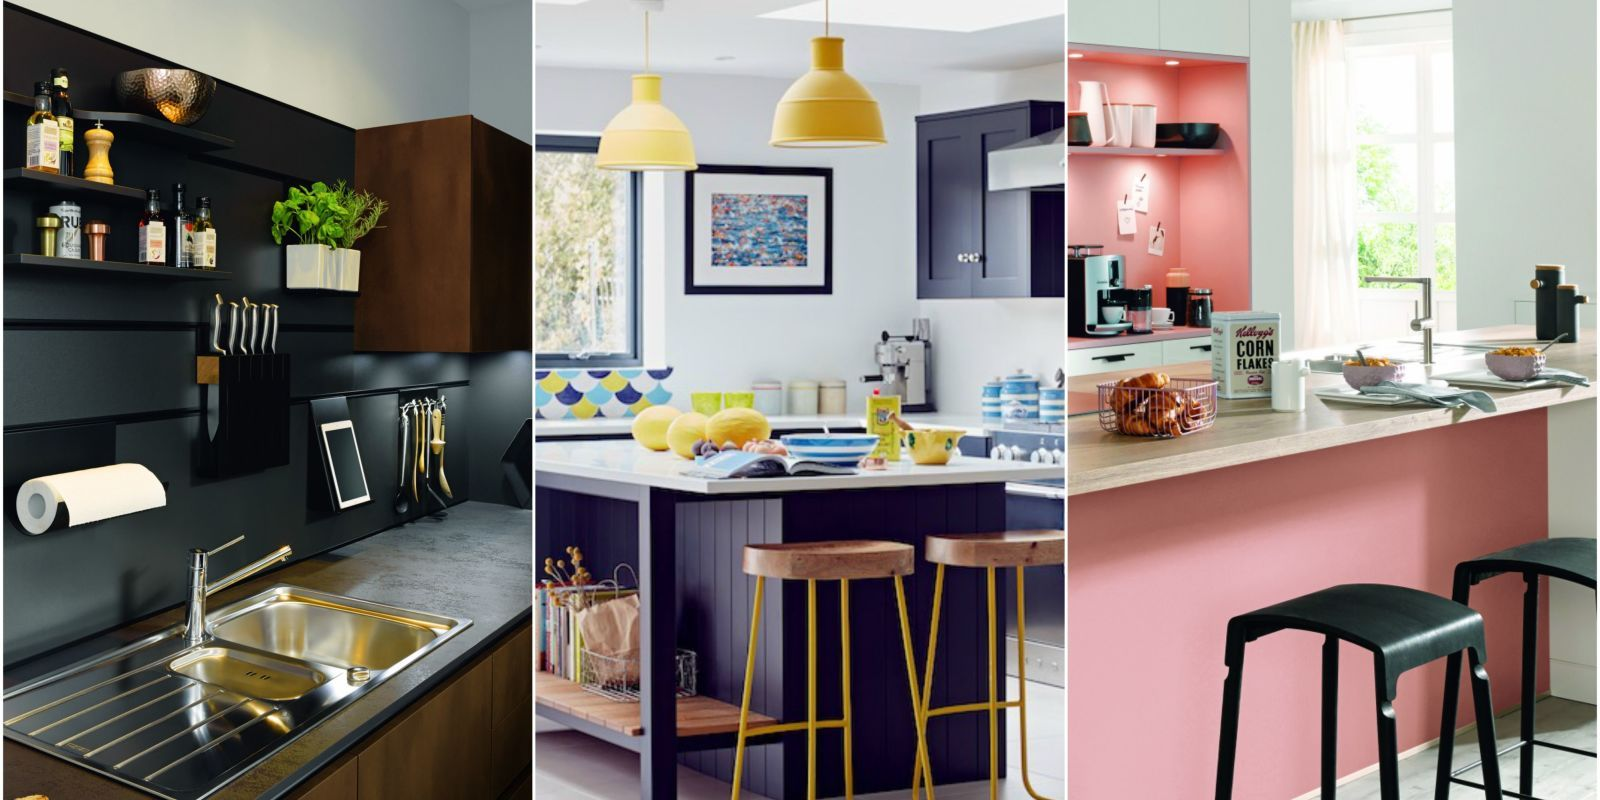 20 Kitchen Trends For 2020 You Need To Know About Kitchen Trends